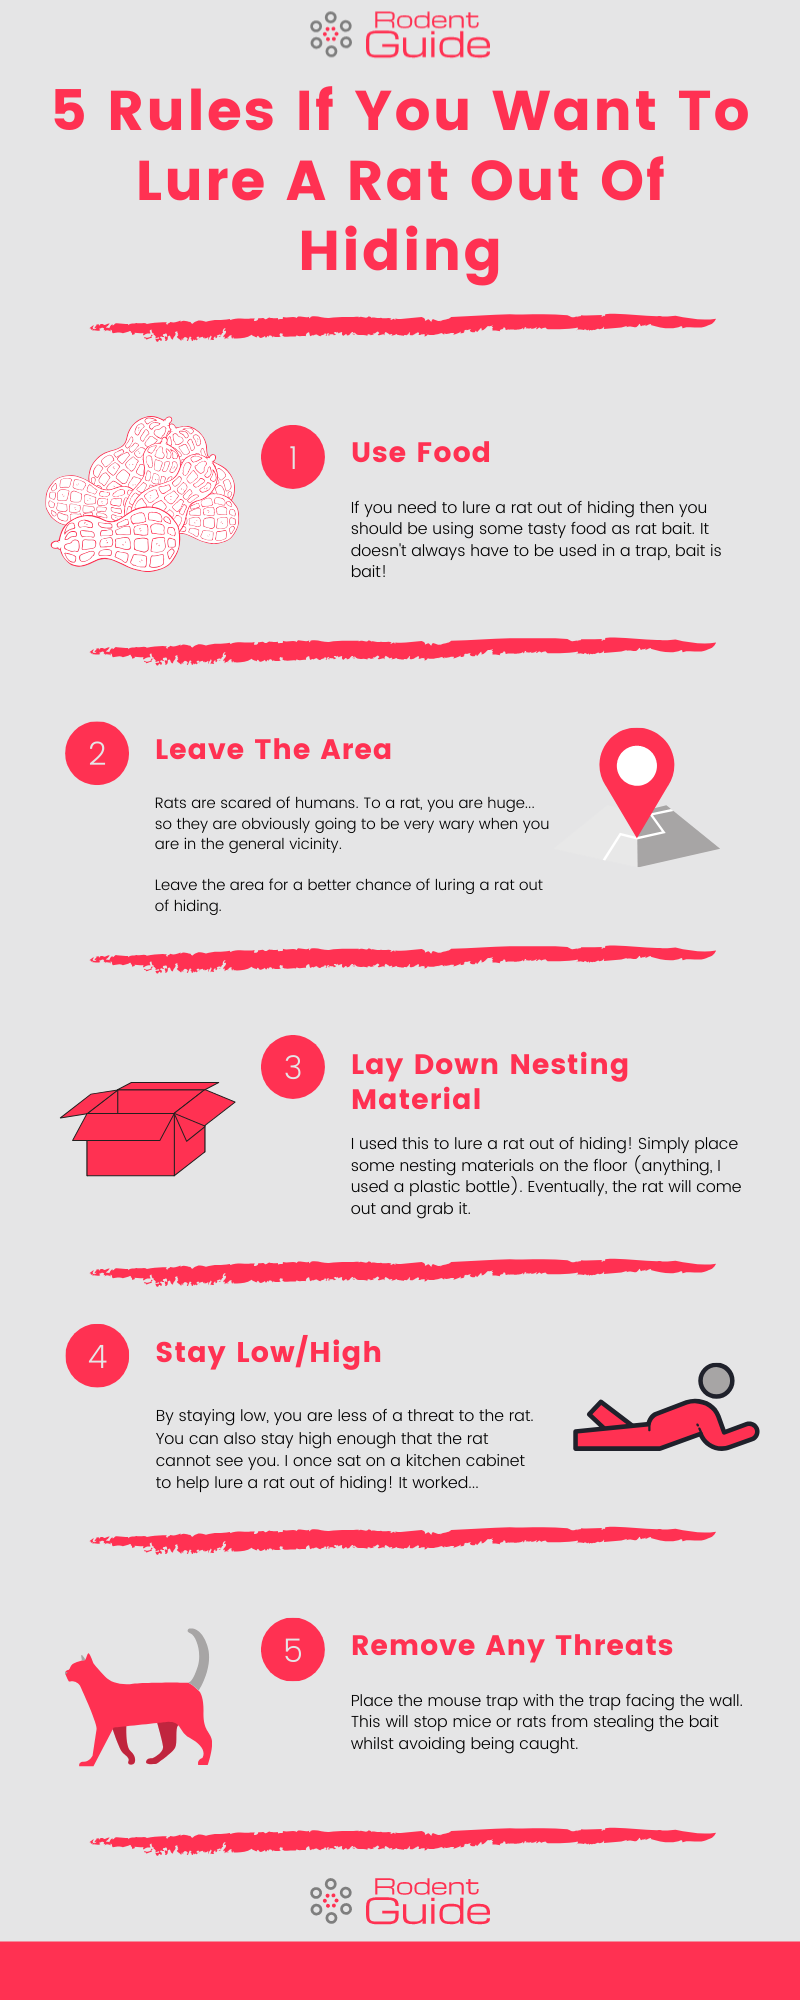 5 Rules If You Want To Lure A Rat Out Of Hiding Infographic